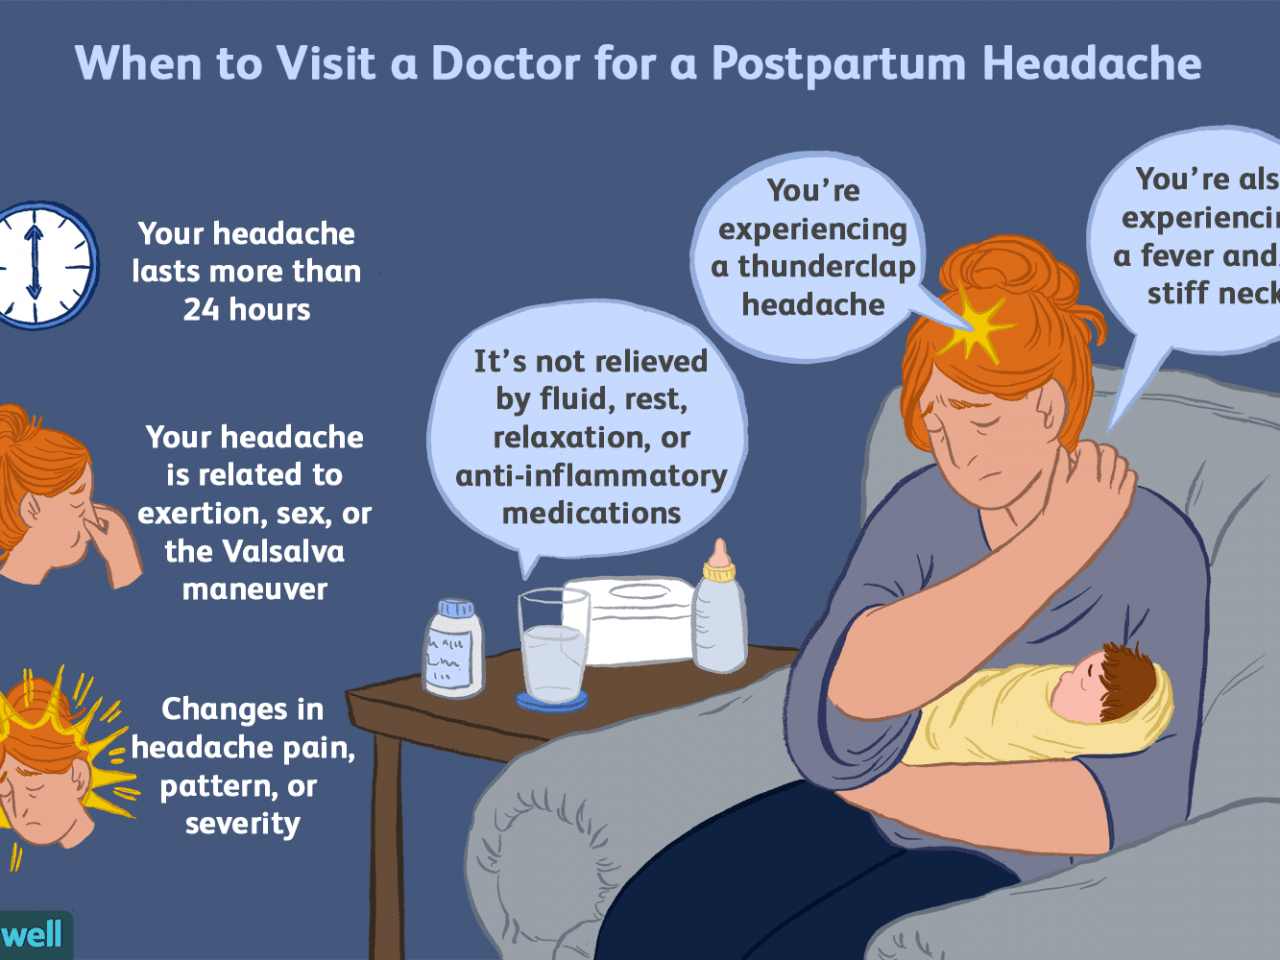 Benign and Serious Causes of Headaches After Pregnancy